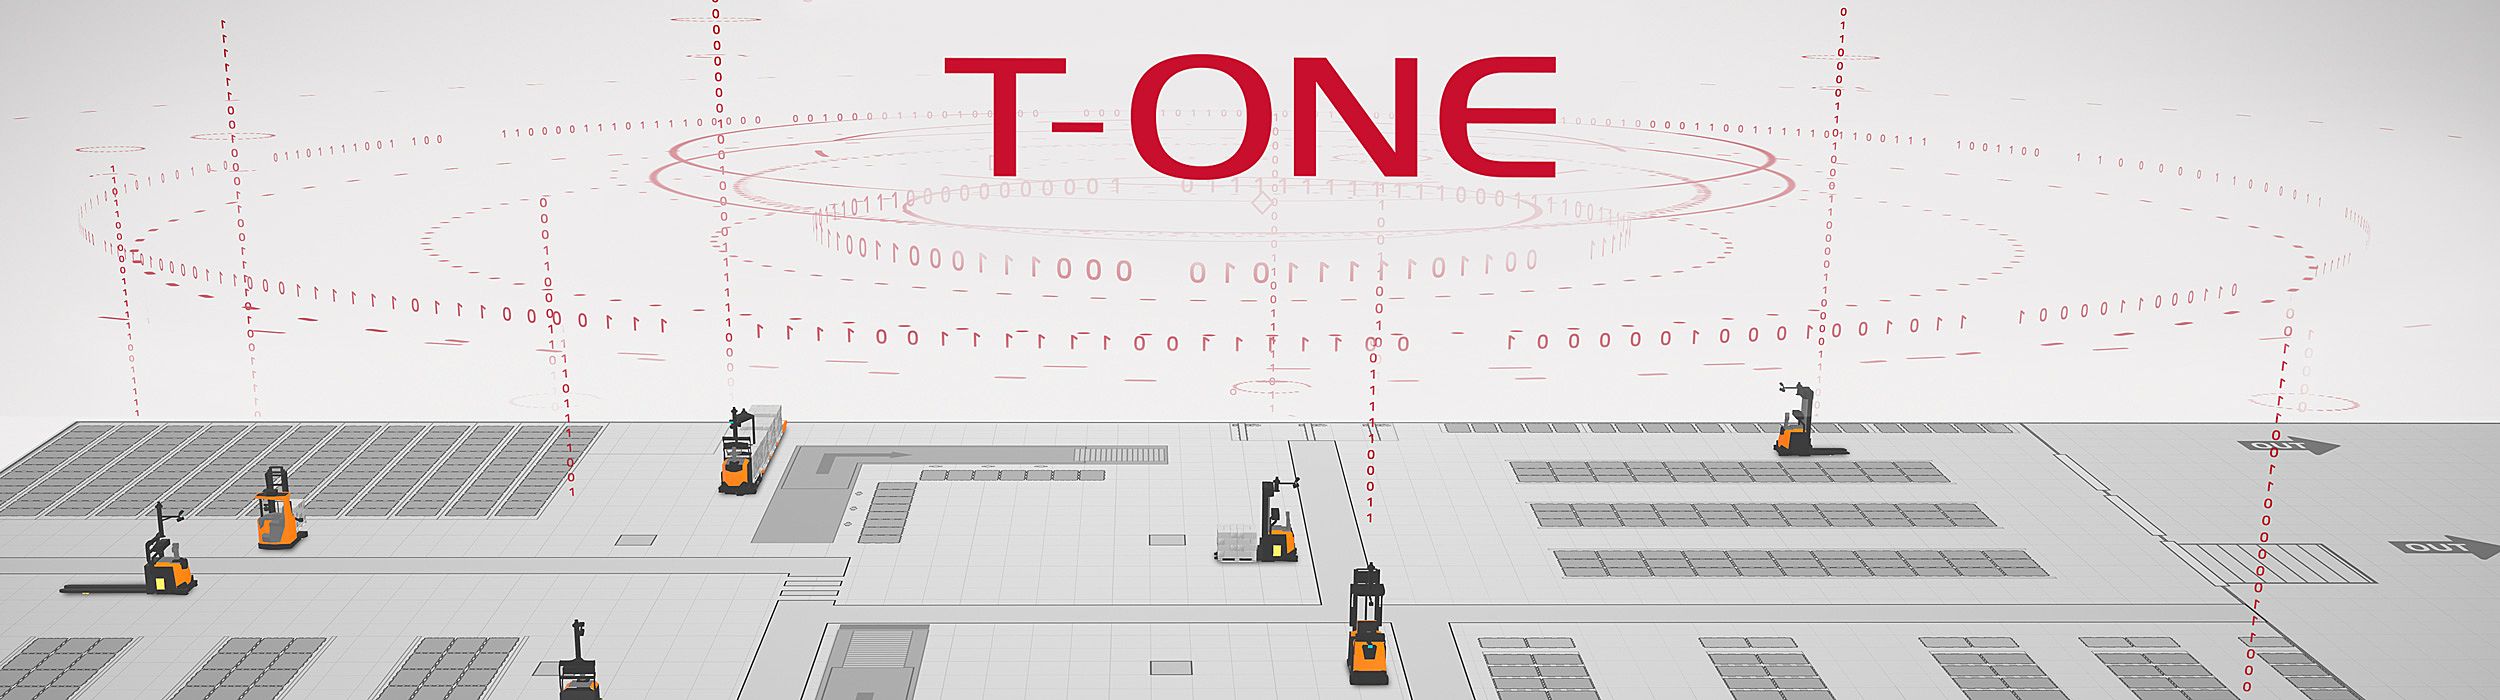 Toyota's AGV automatiserings software T-ONE